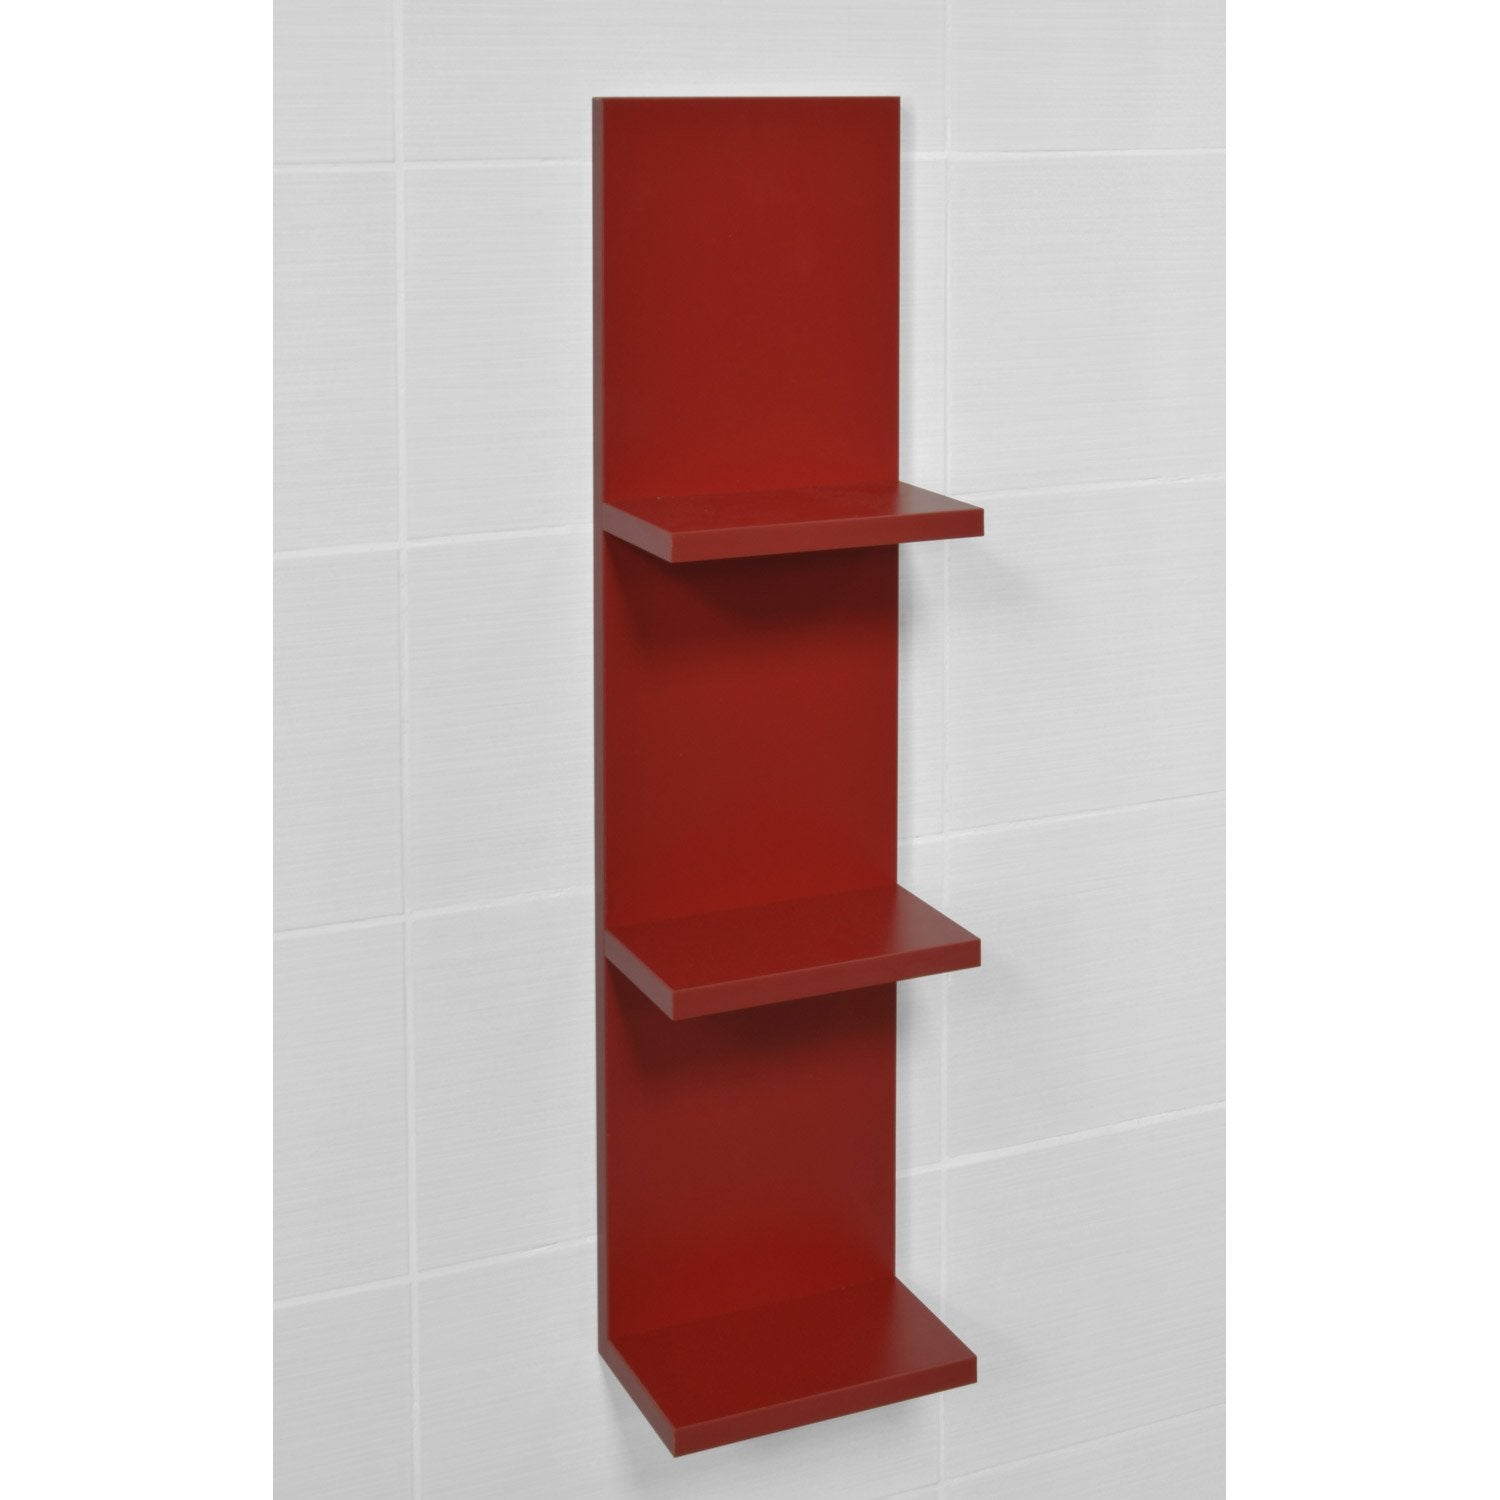 Etag re de wc coin d 39 o rouge rouge n 3 leroy merlin - Tablette murale rouge ...